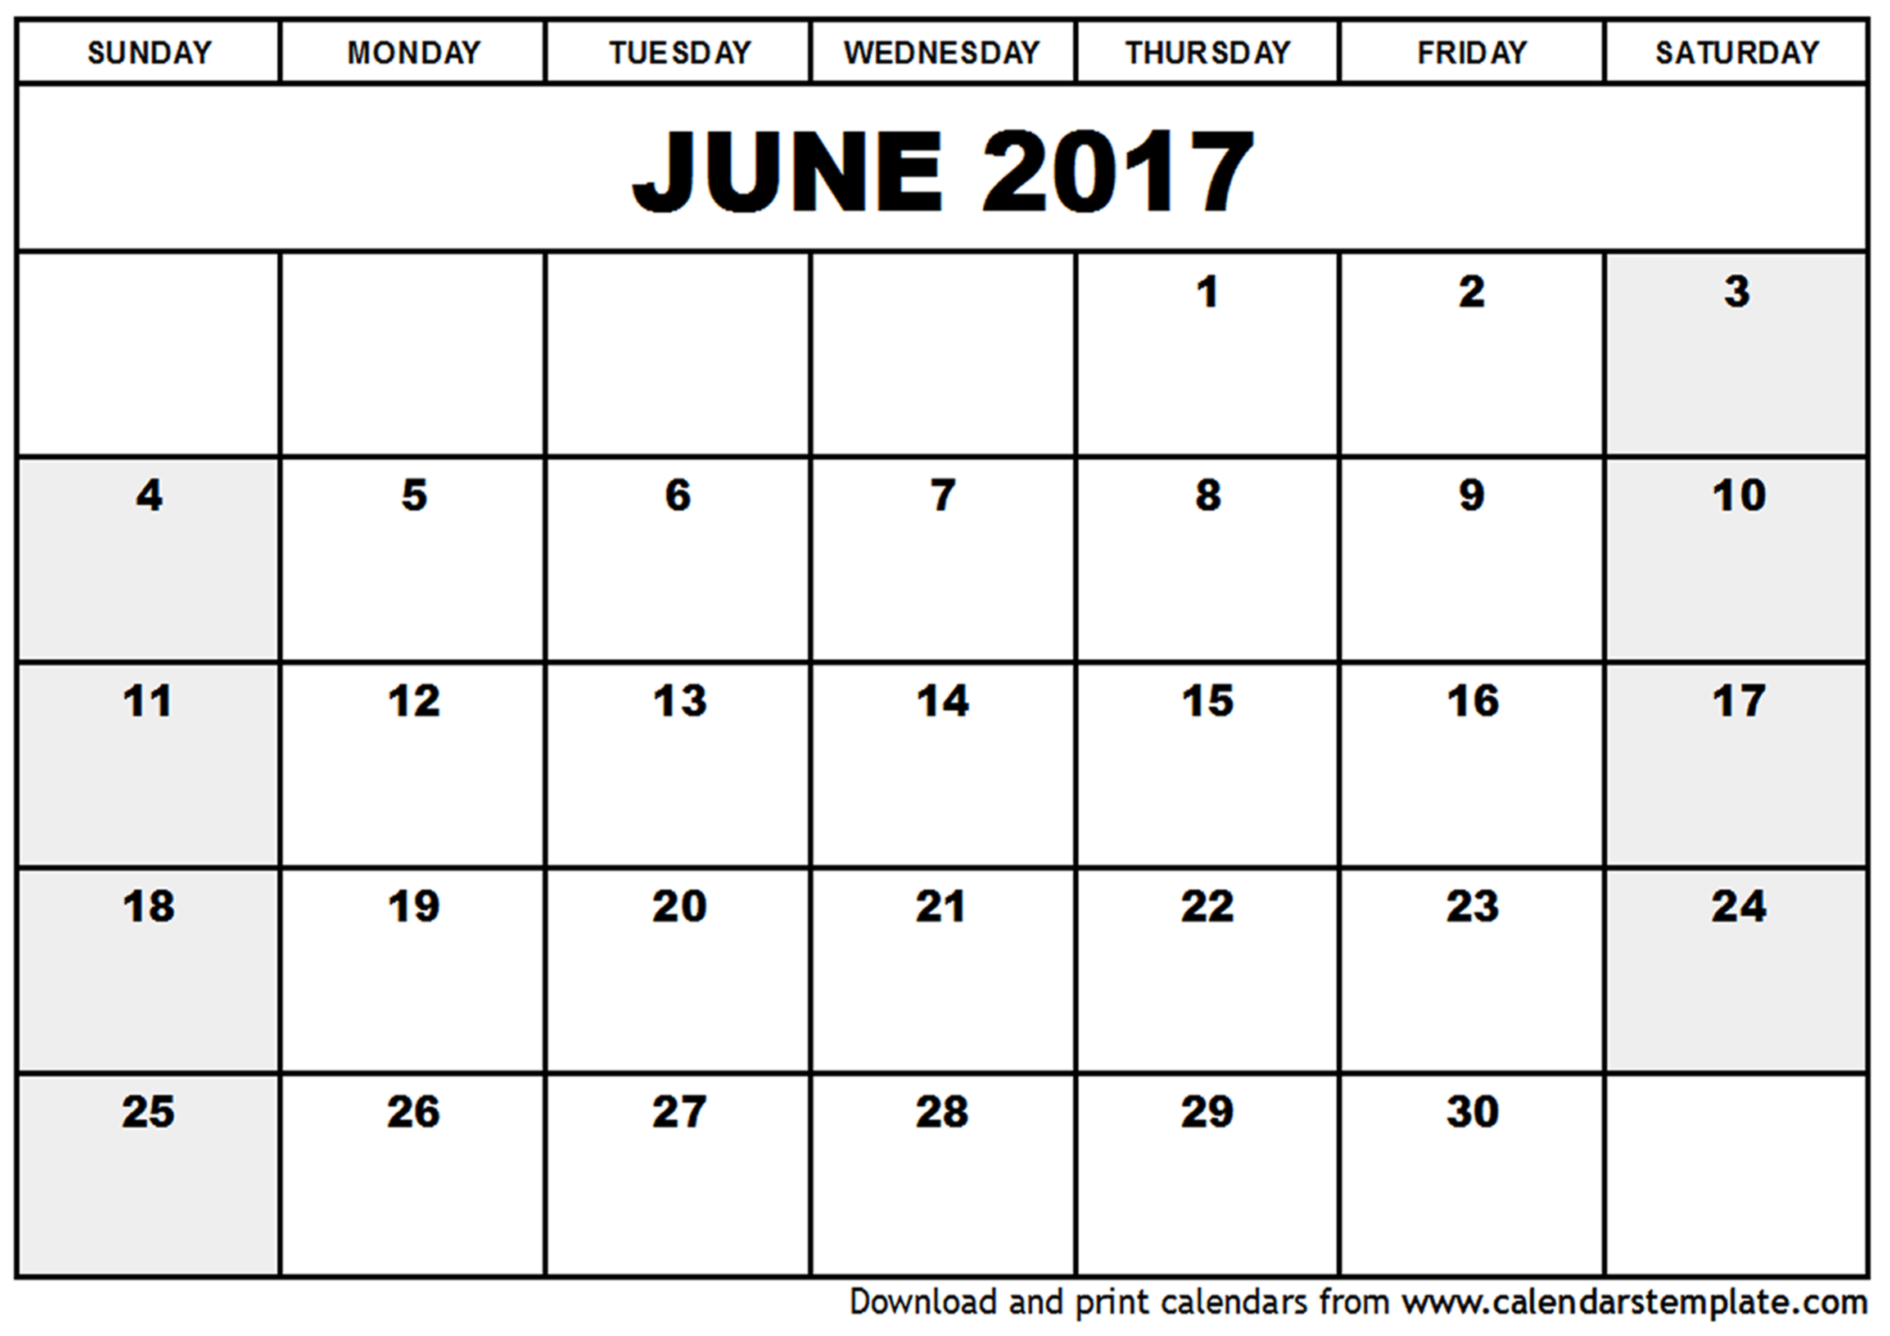 June 2017 Printable Calendar Free Download